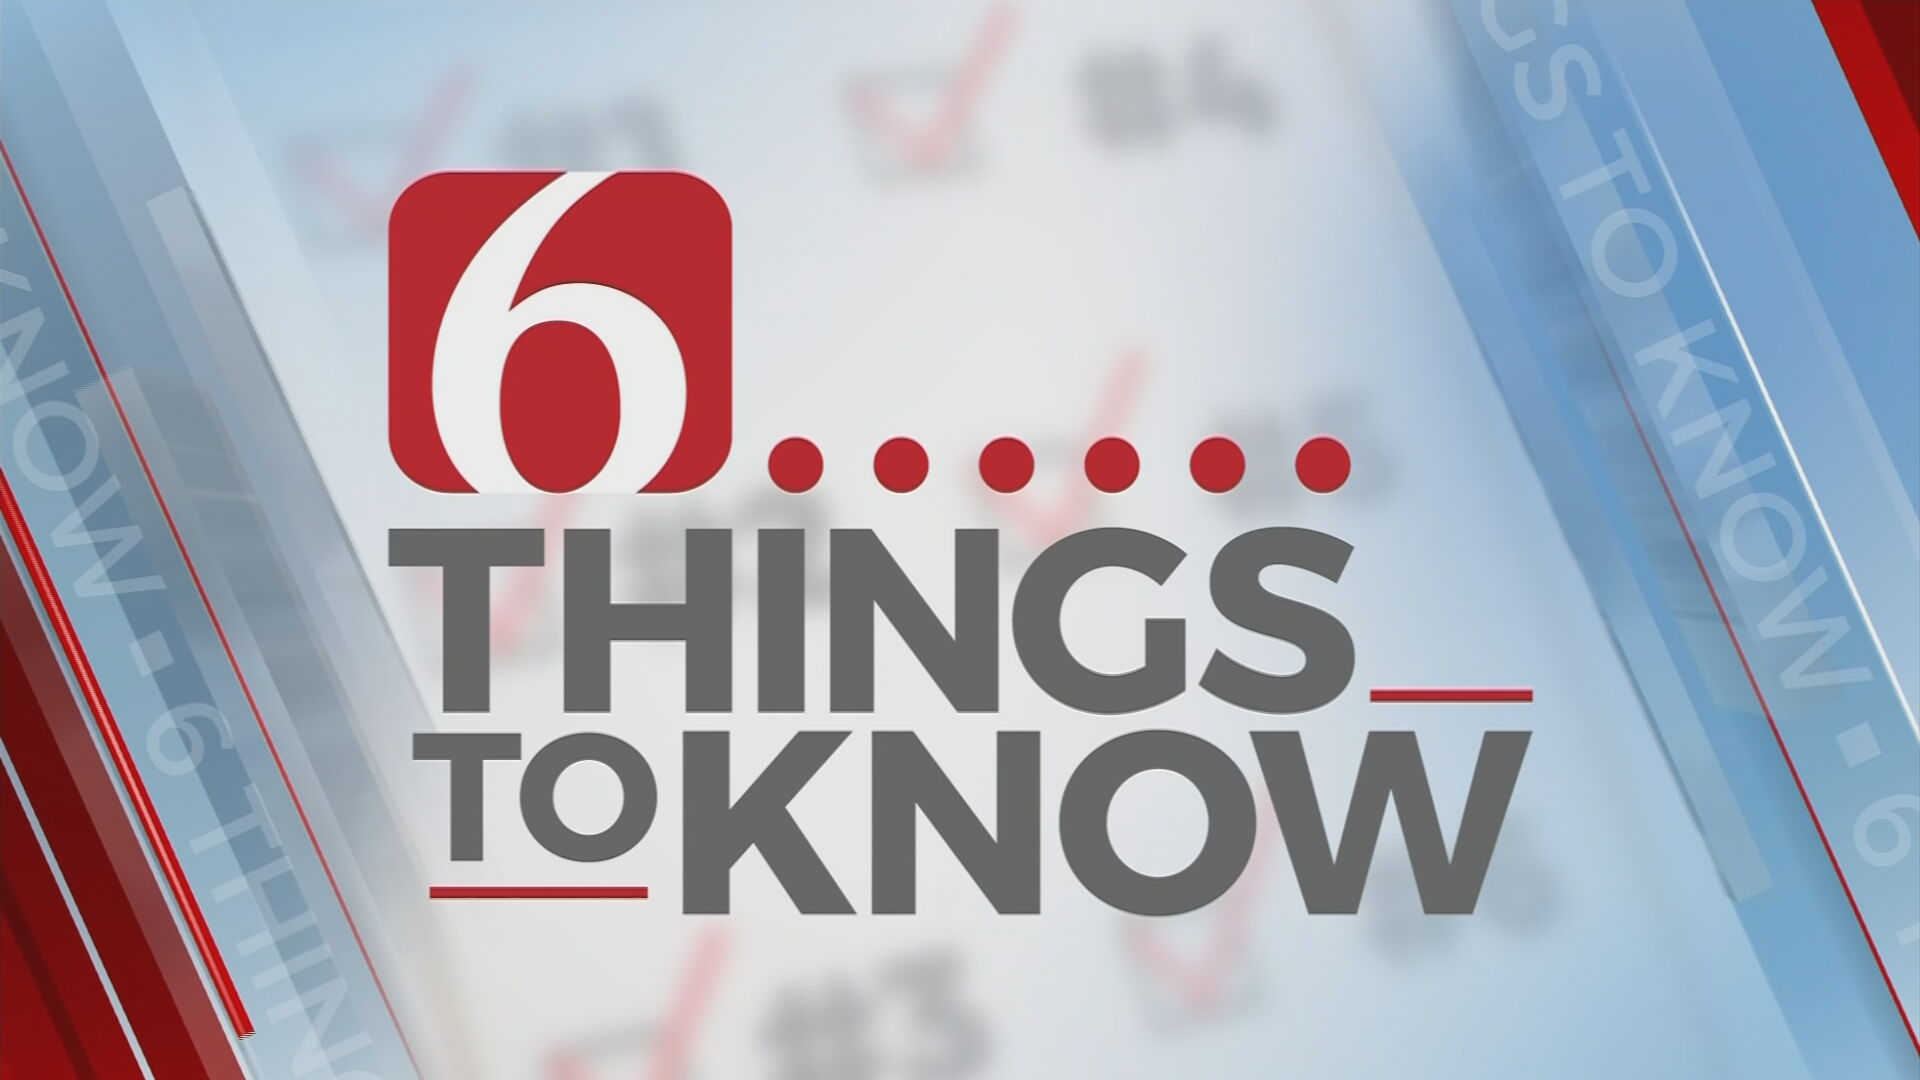 6 Things To Know (Oct 30): Halloween Thrills For All